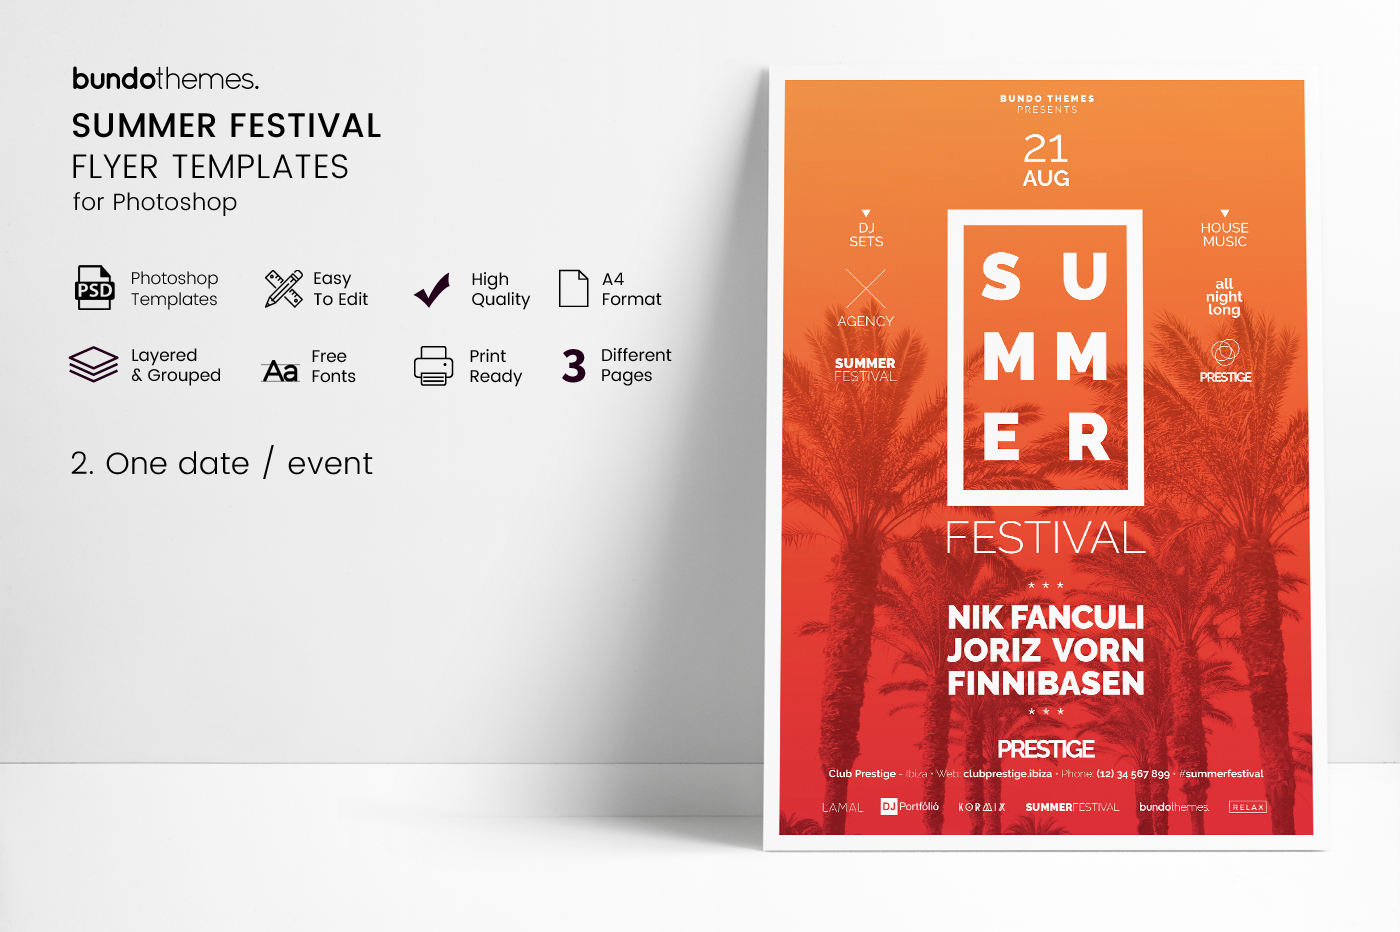 Summer Festival Flyer Templates example image 5